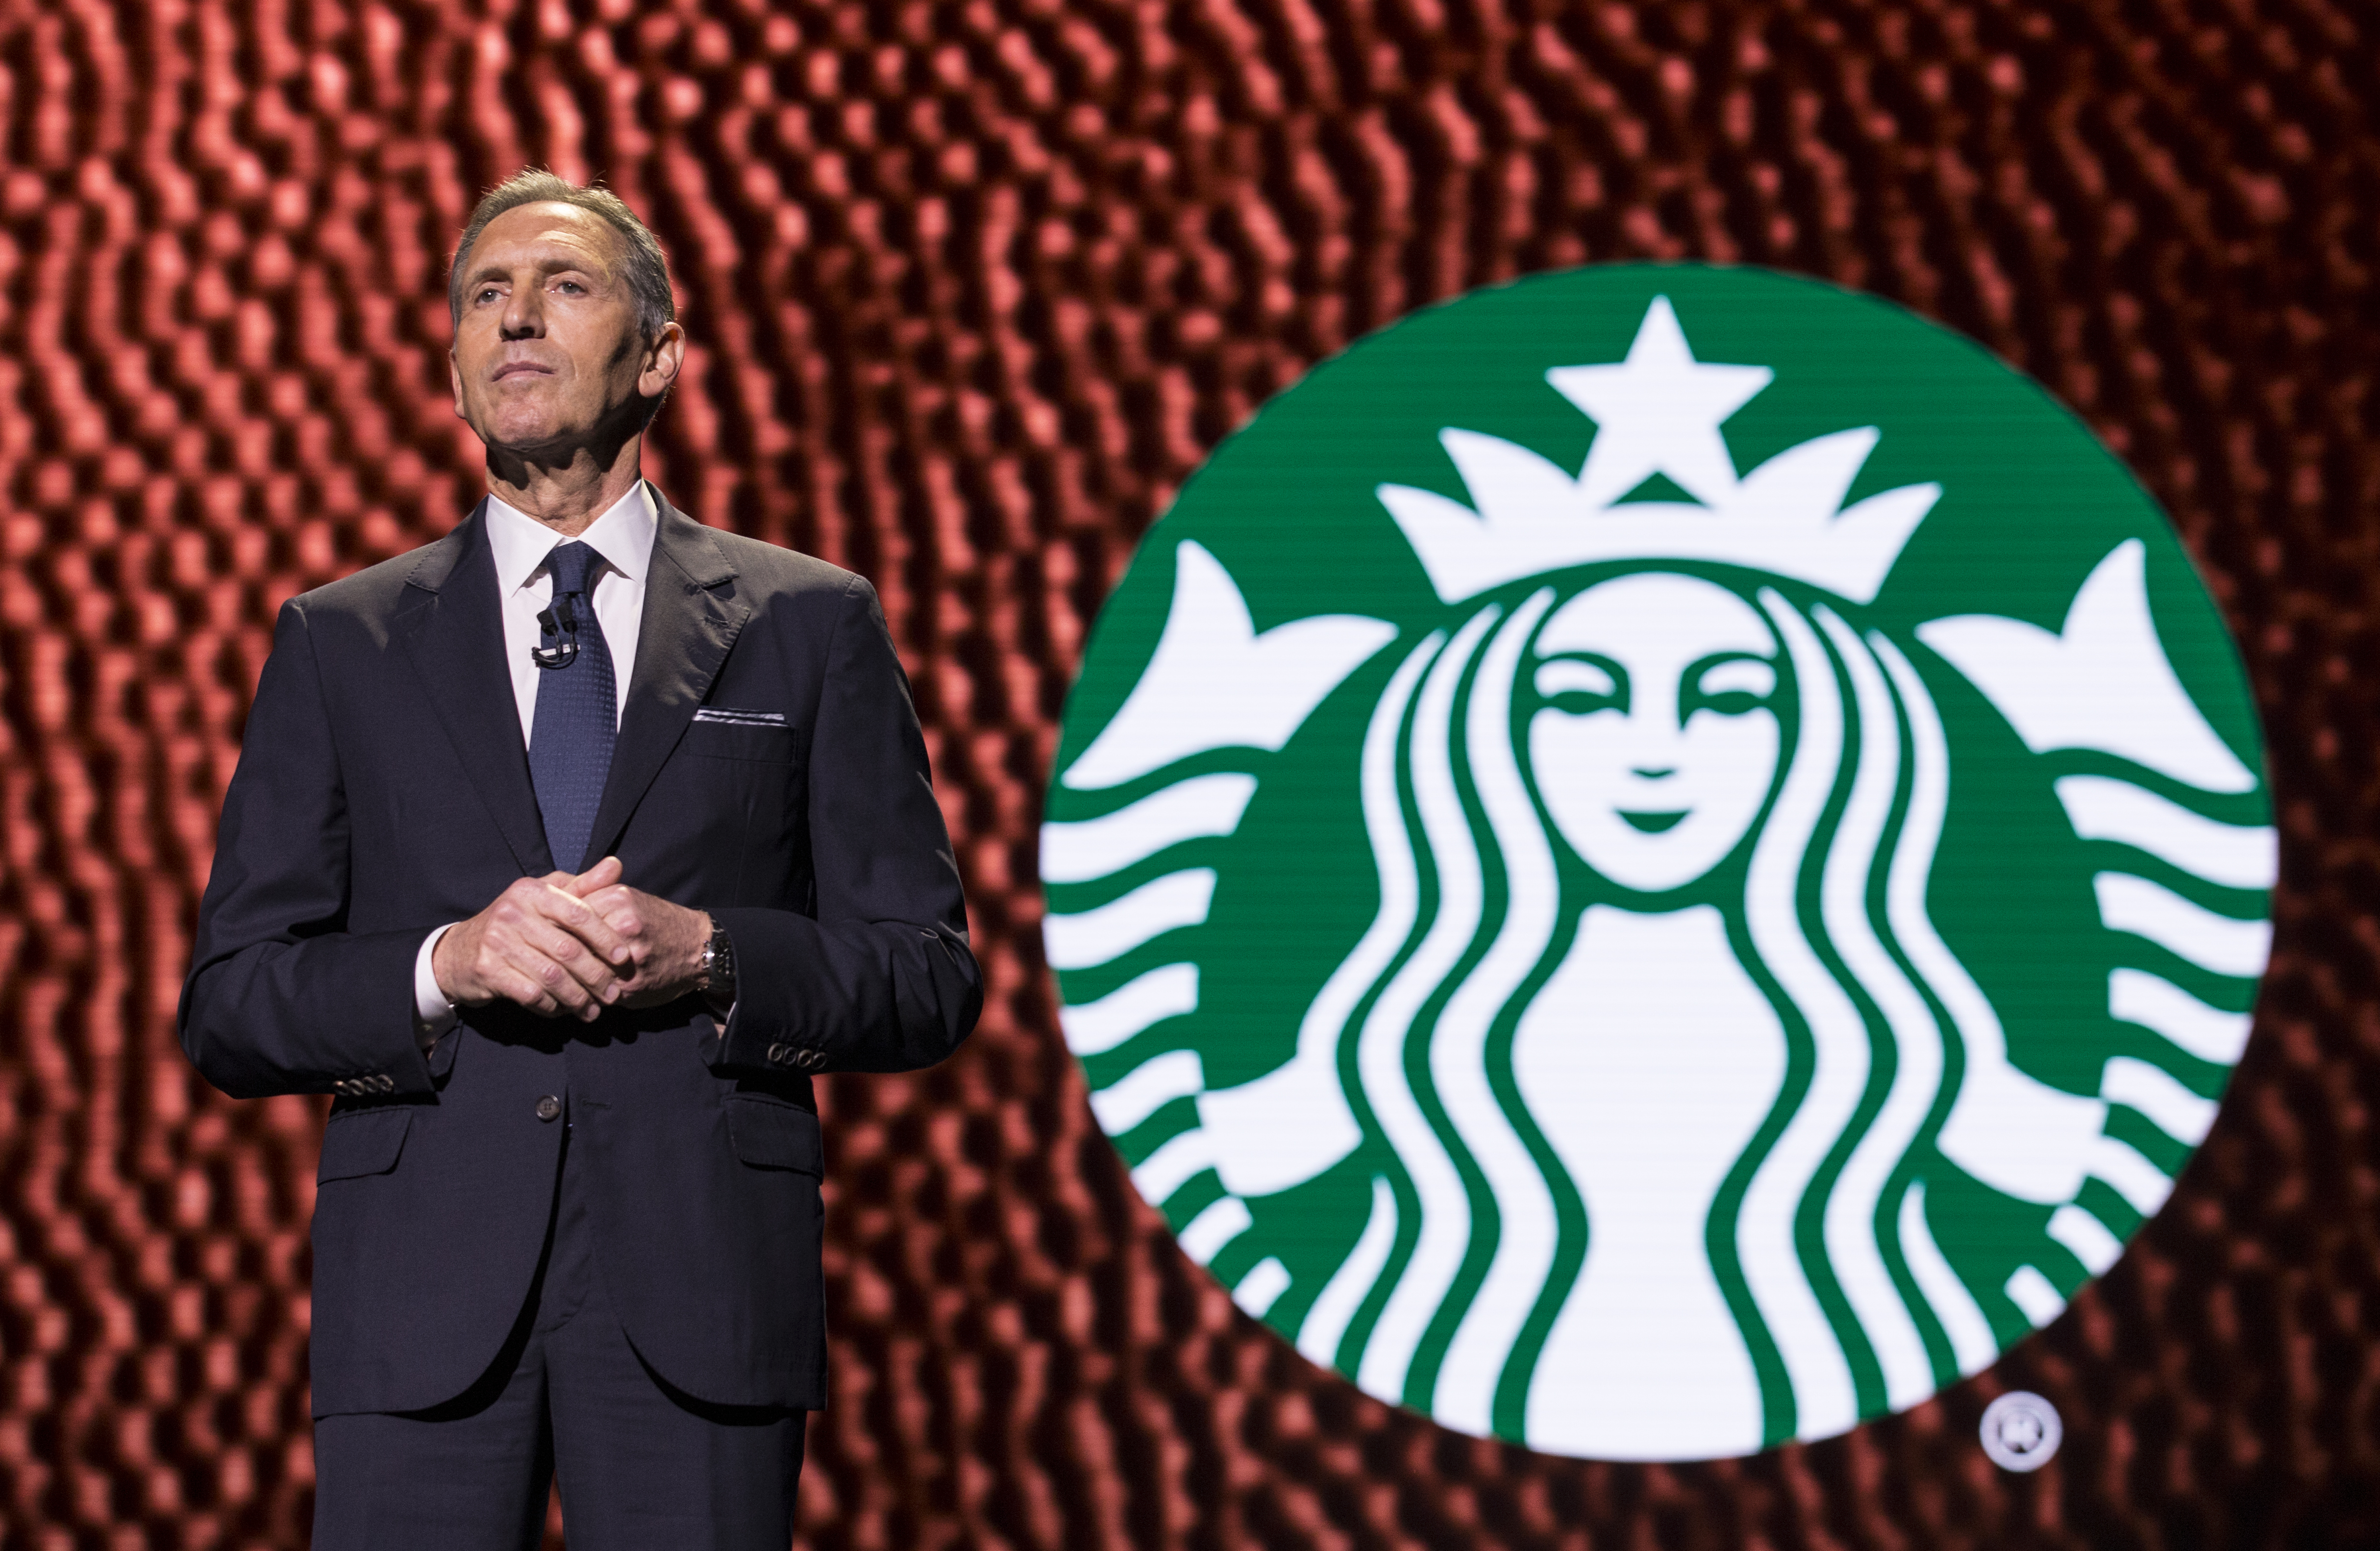 CEO Howard Schultz pauses while speaking during the Starbucks annual meeting of shareholders on March 22, 2017 in Seattle, Washington. The 25th annual meeting will be the last for Schultz as CEO. (Photo by Stephen Brashear/Getty Images)